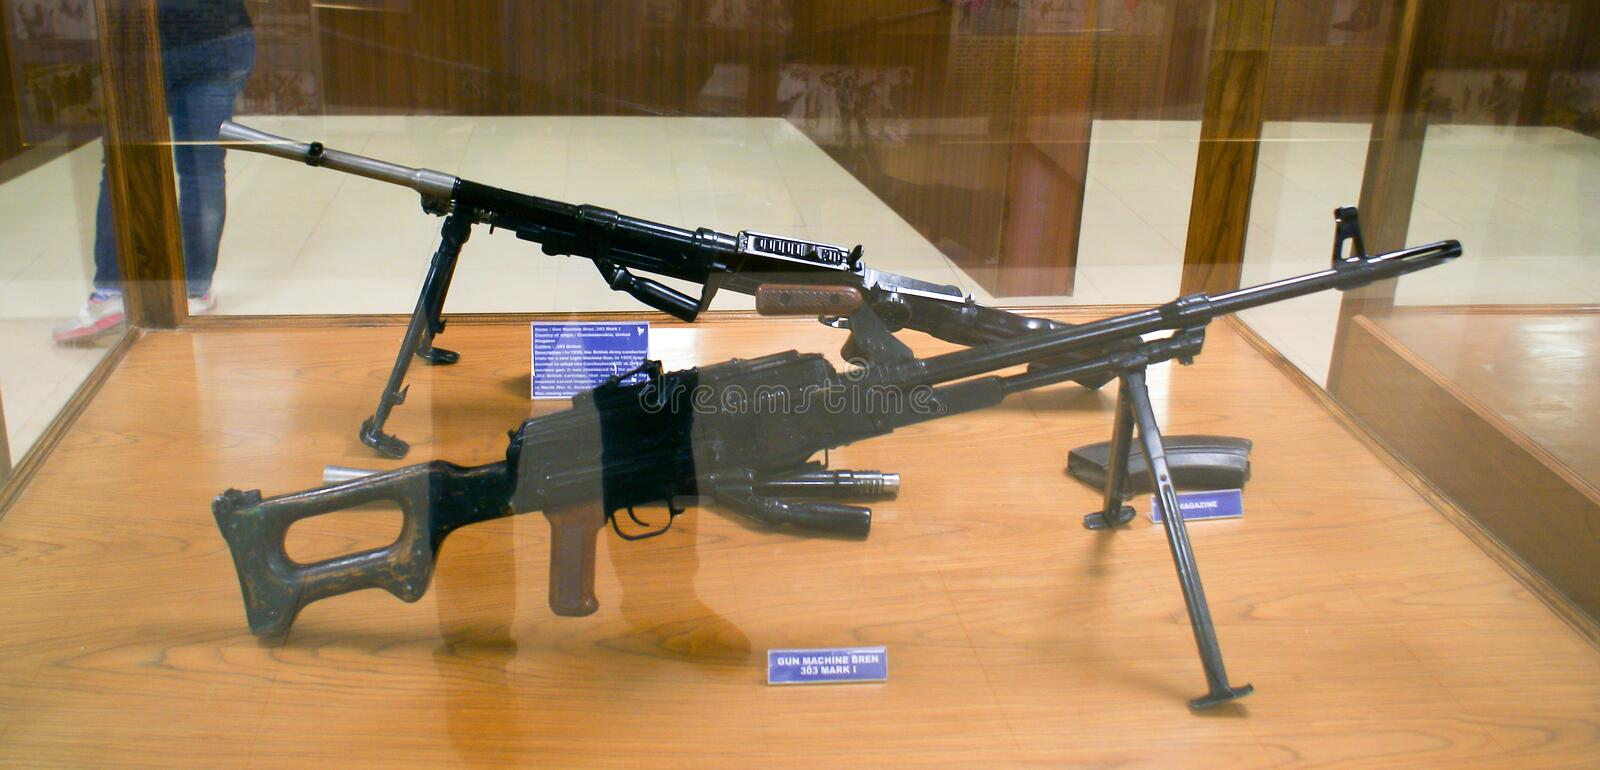 Two Bren Machine Gun 303 Mark I weapon with magazines on display at Hall of Fame, Leh. Two Bren Machine Gun 303 Mark I weapon alongwith magazines on display at royalty free stock image